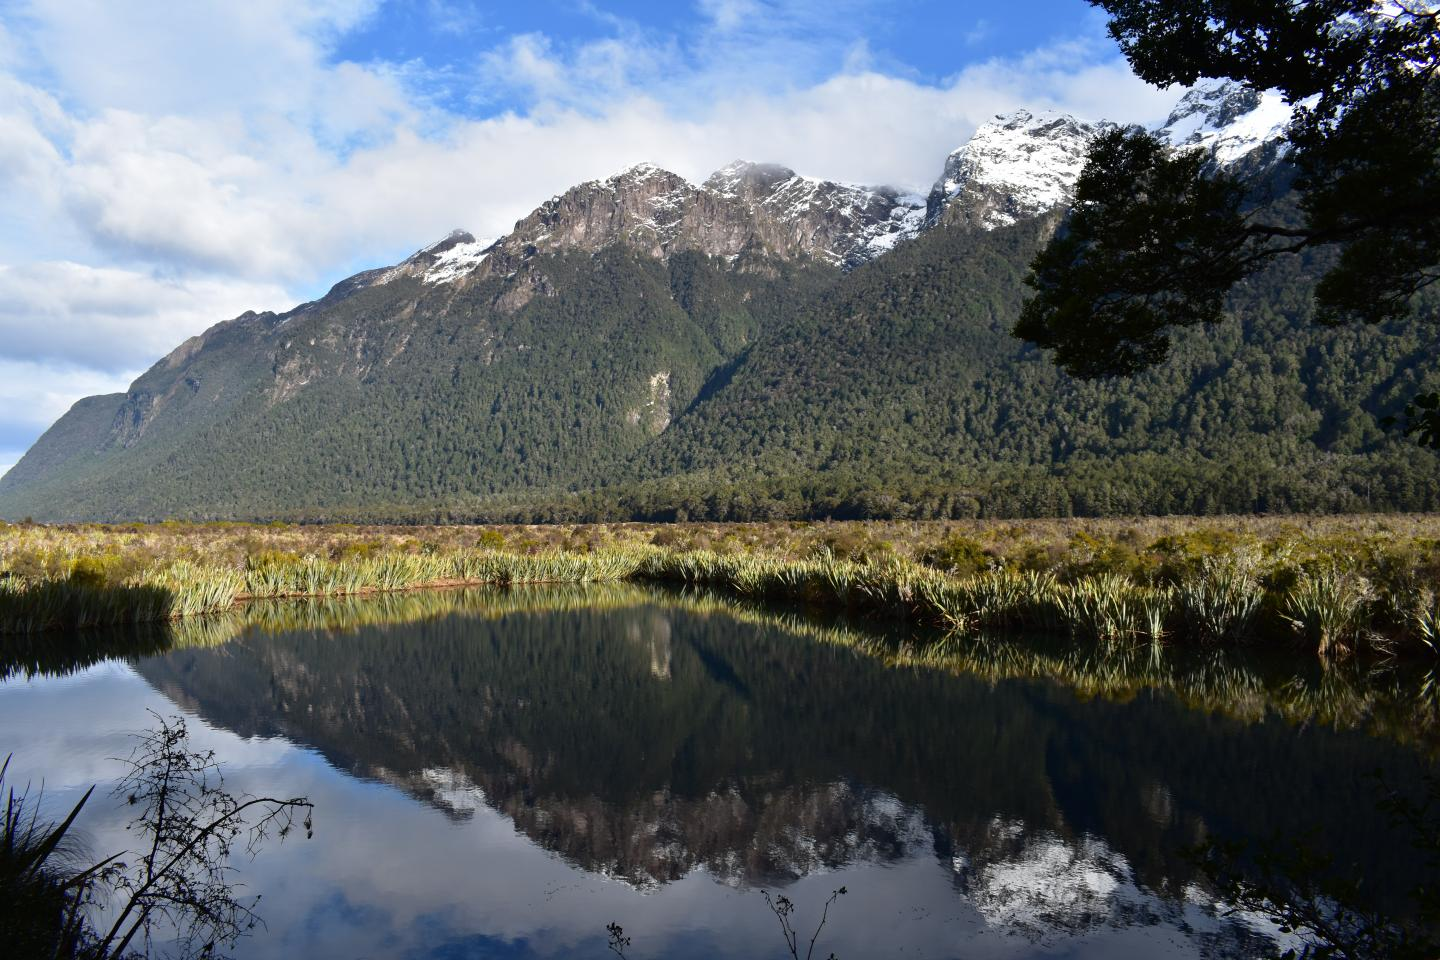 Scenic views of nature seen by teenage travelers during summer youth travel program in New Zealand